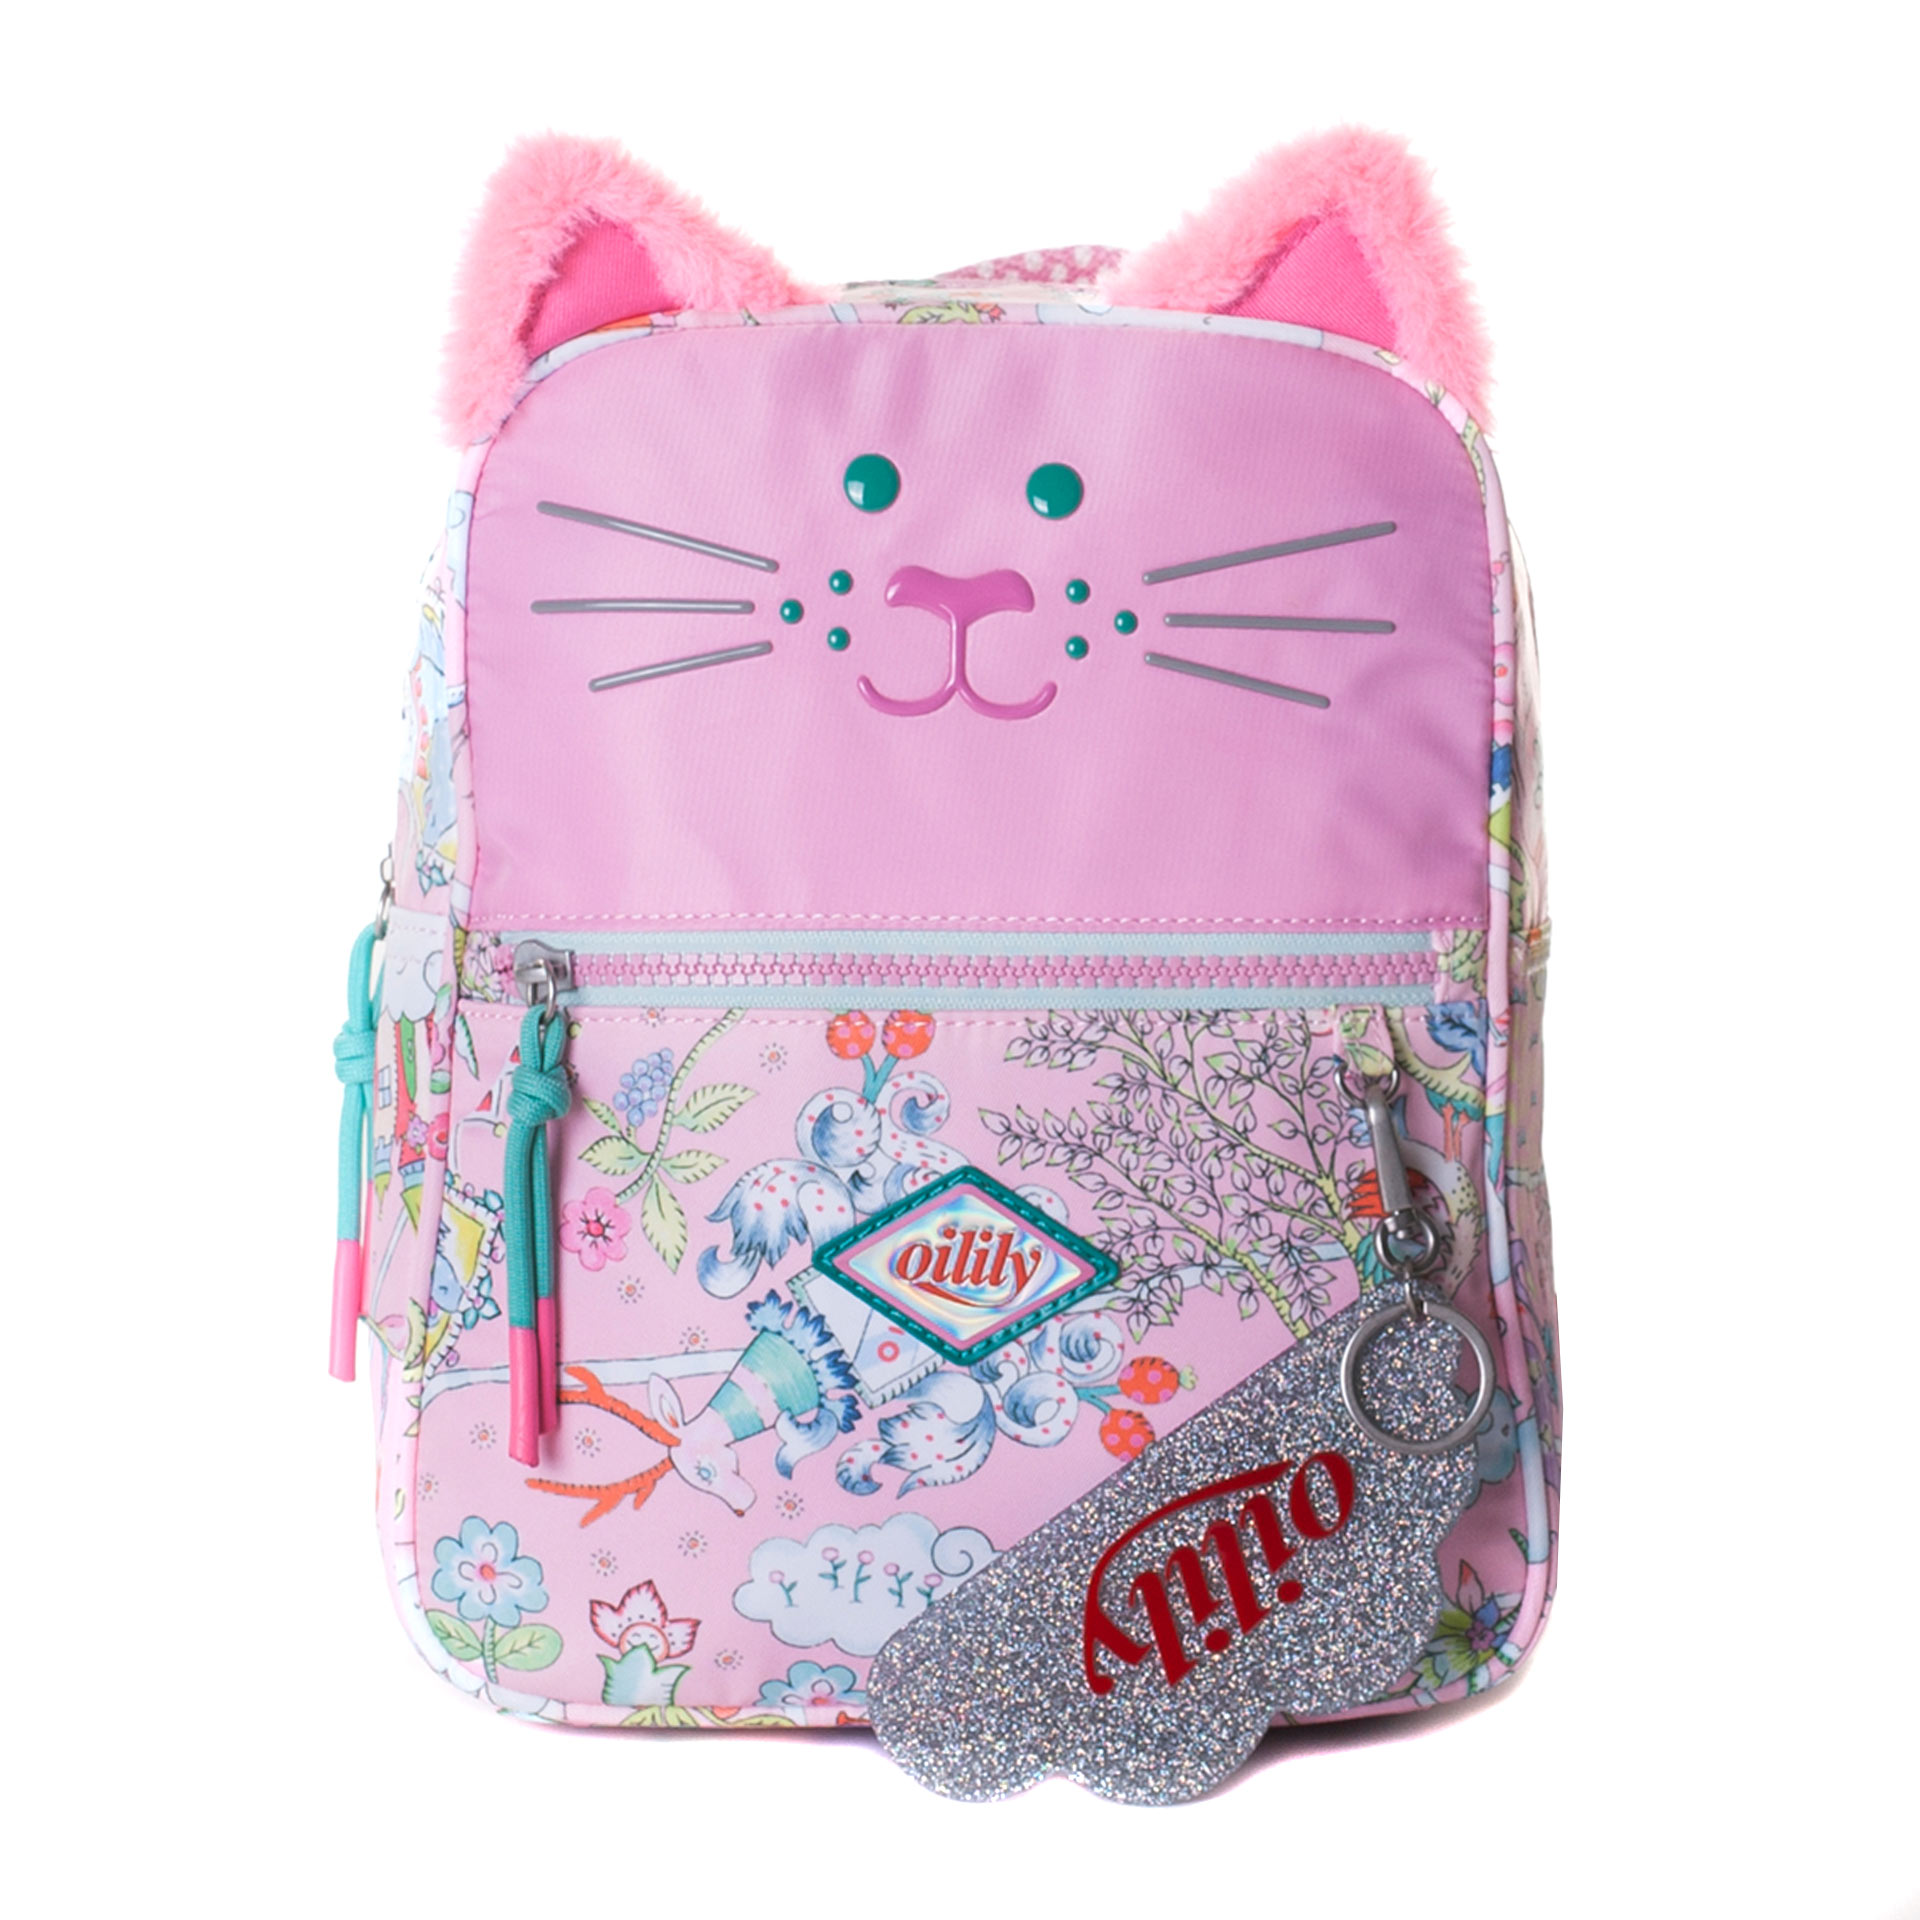 Oilily Castle in the Clouds Rucksack rose shadow